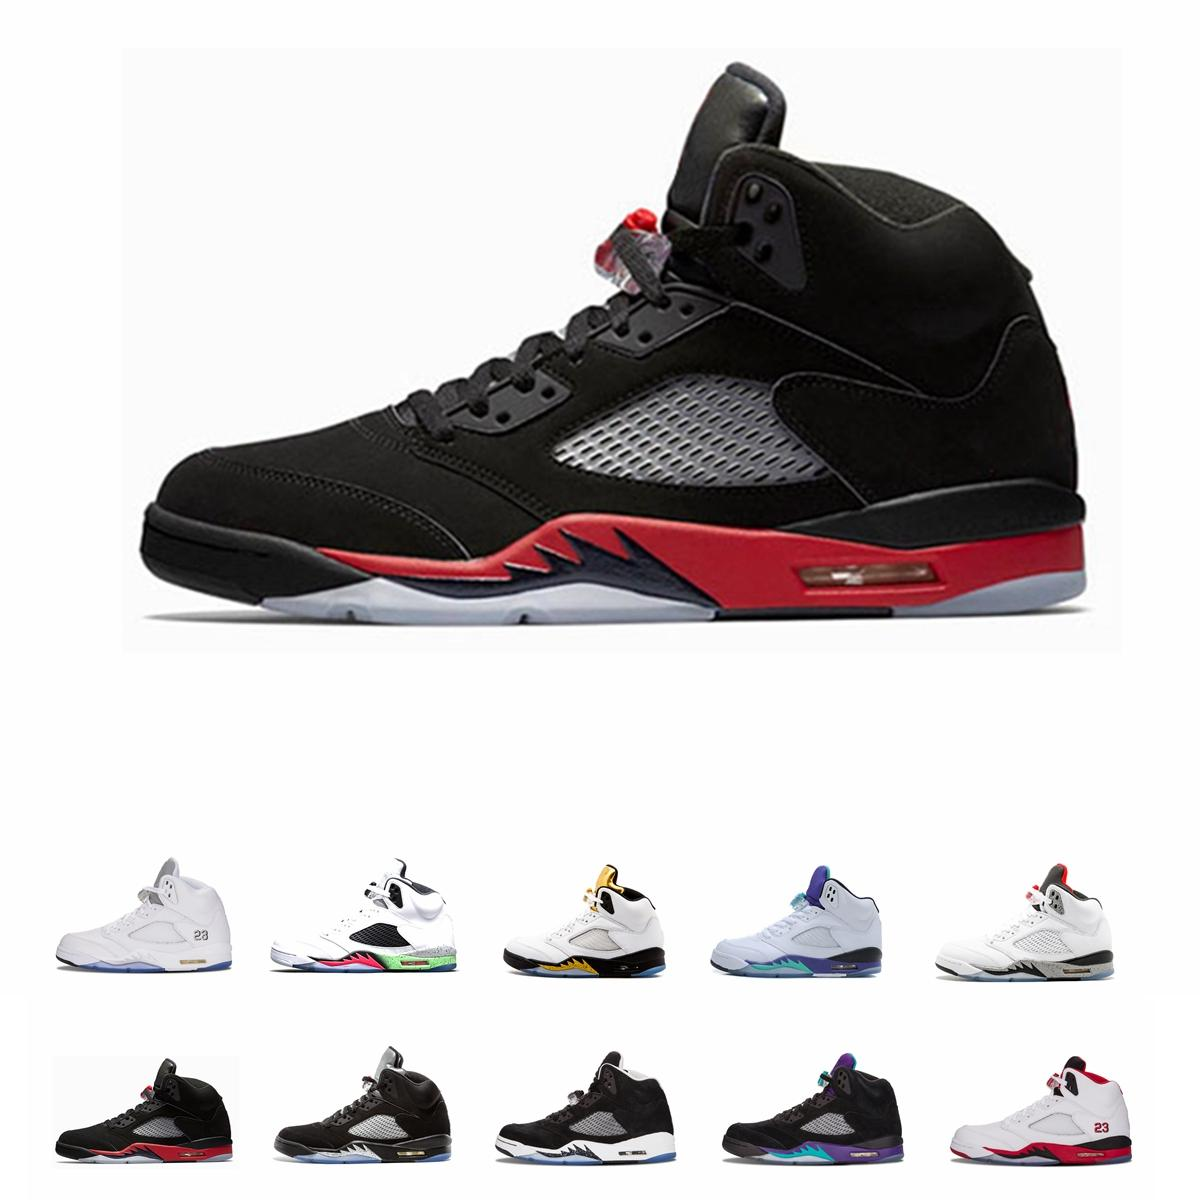 Nike Air Jordan 2019 5s FAB 5 TROPHY ROOM Hombres Zapatos FIBA ​​12s Sneakerin Concord 11s Cap and Gown 13s Zapatillas de deporte para hombre Zapatillas deportivas 7-13